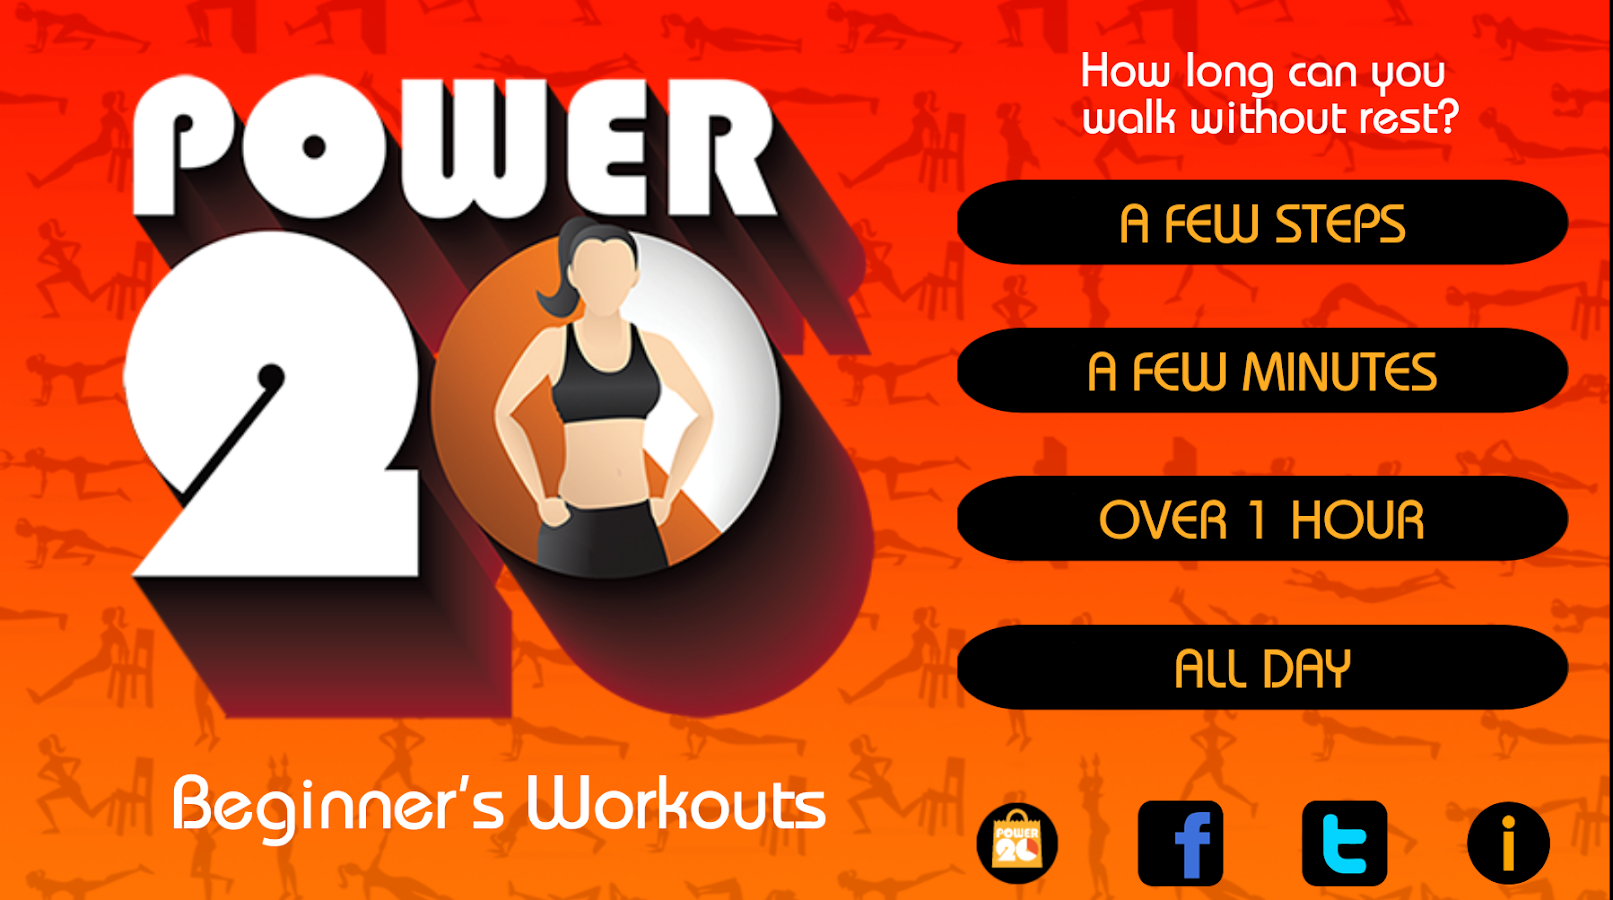 20 Minute Beginners Workout Screenshot 0